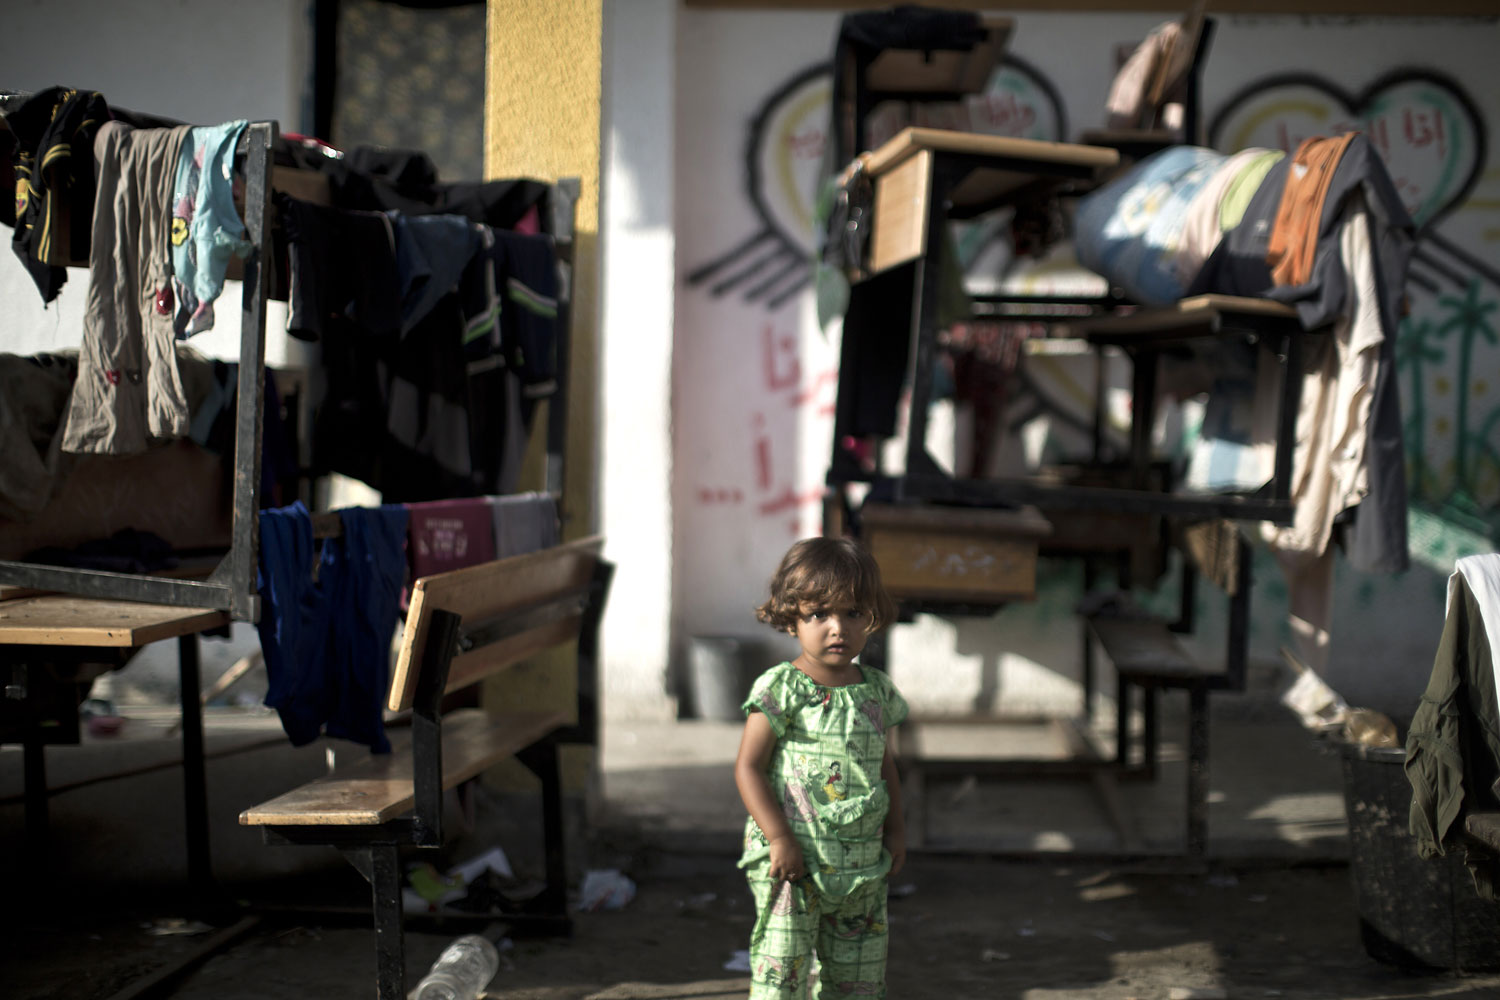 A Palestinian child along with her family, who fled their home during an Israeli ground offensive, take refuge at a UN school in Gaza City with other families, on July 19, 2014.